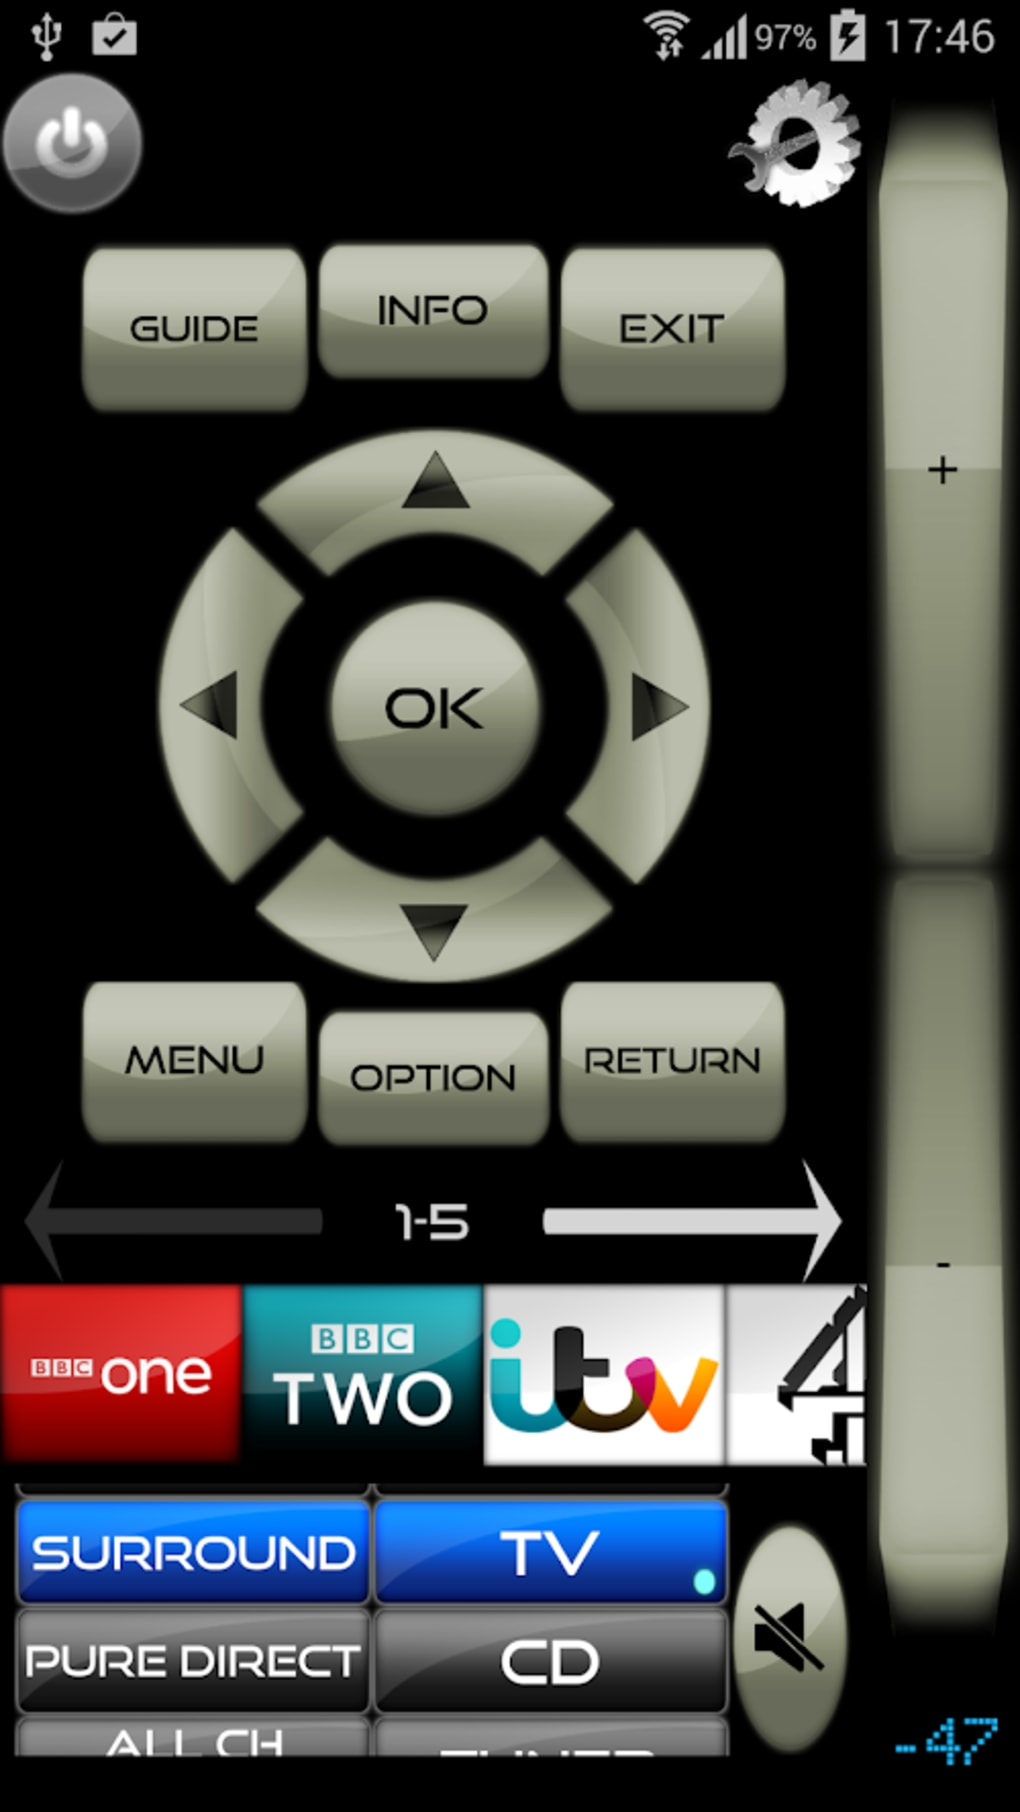 Remote for Samsung TV/Blu-Ray for Android - Download